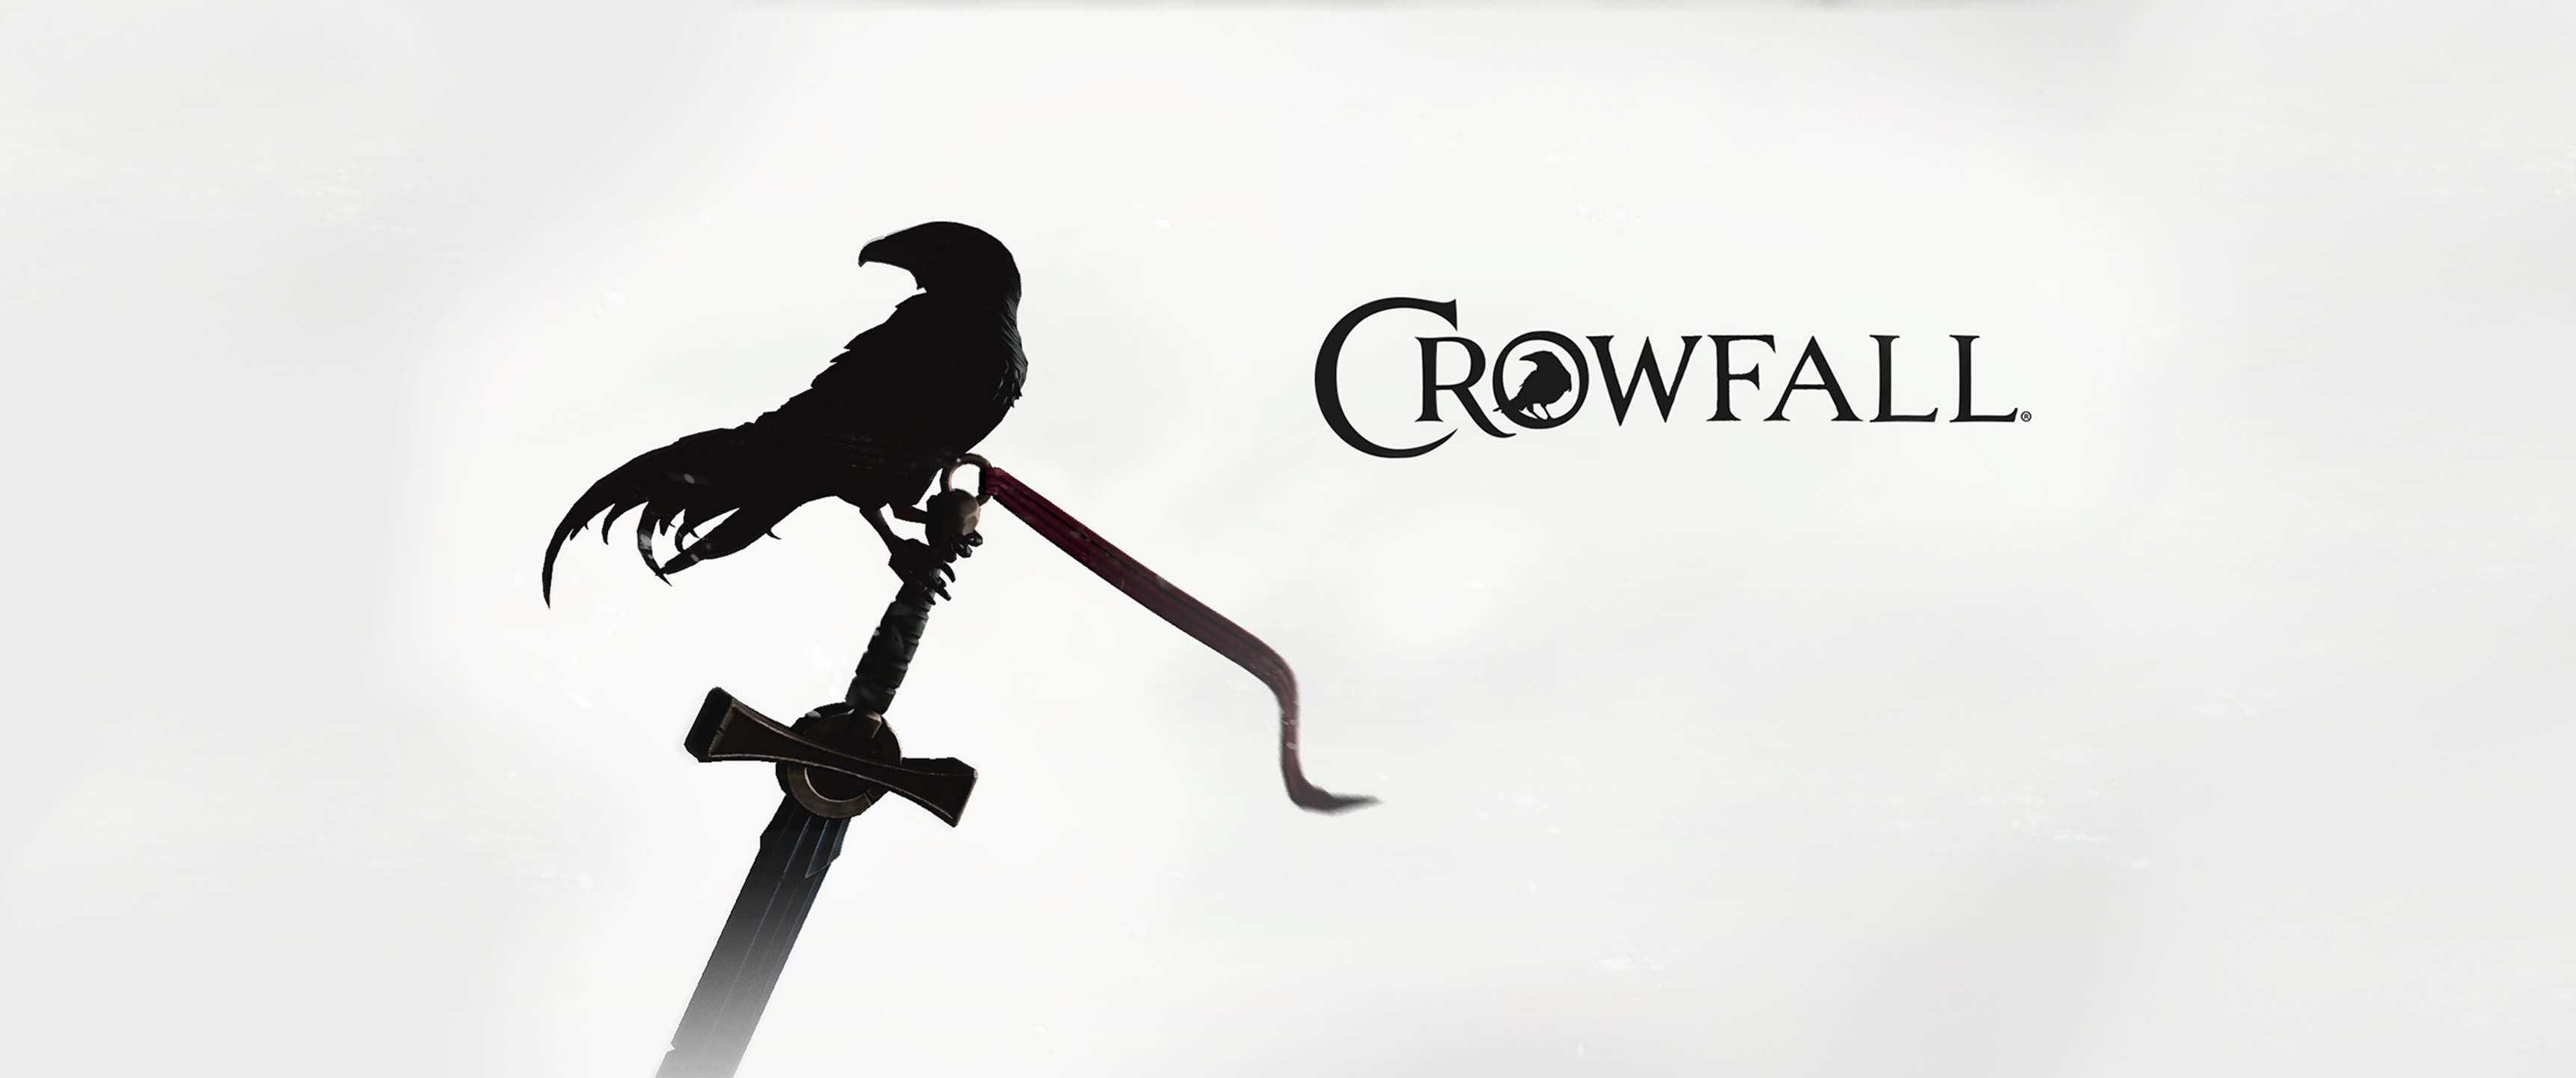 CrowLogin Wallpaper 3440x1440